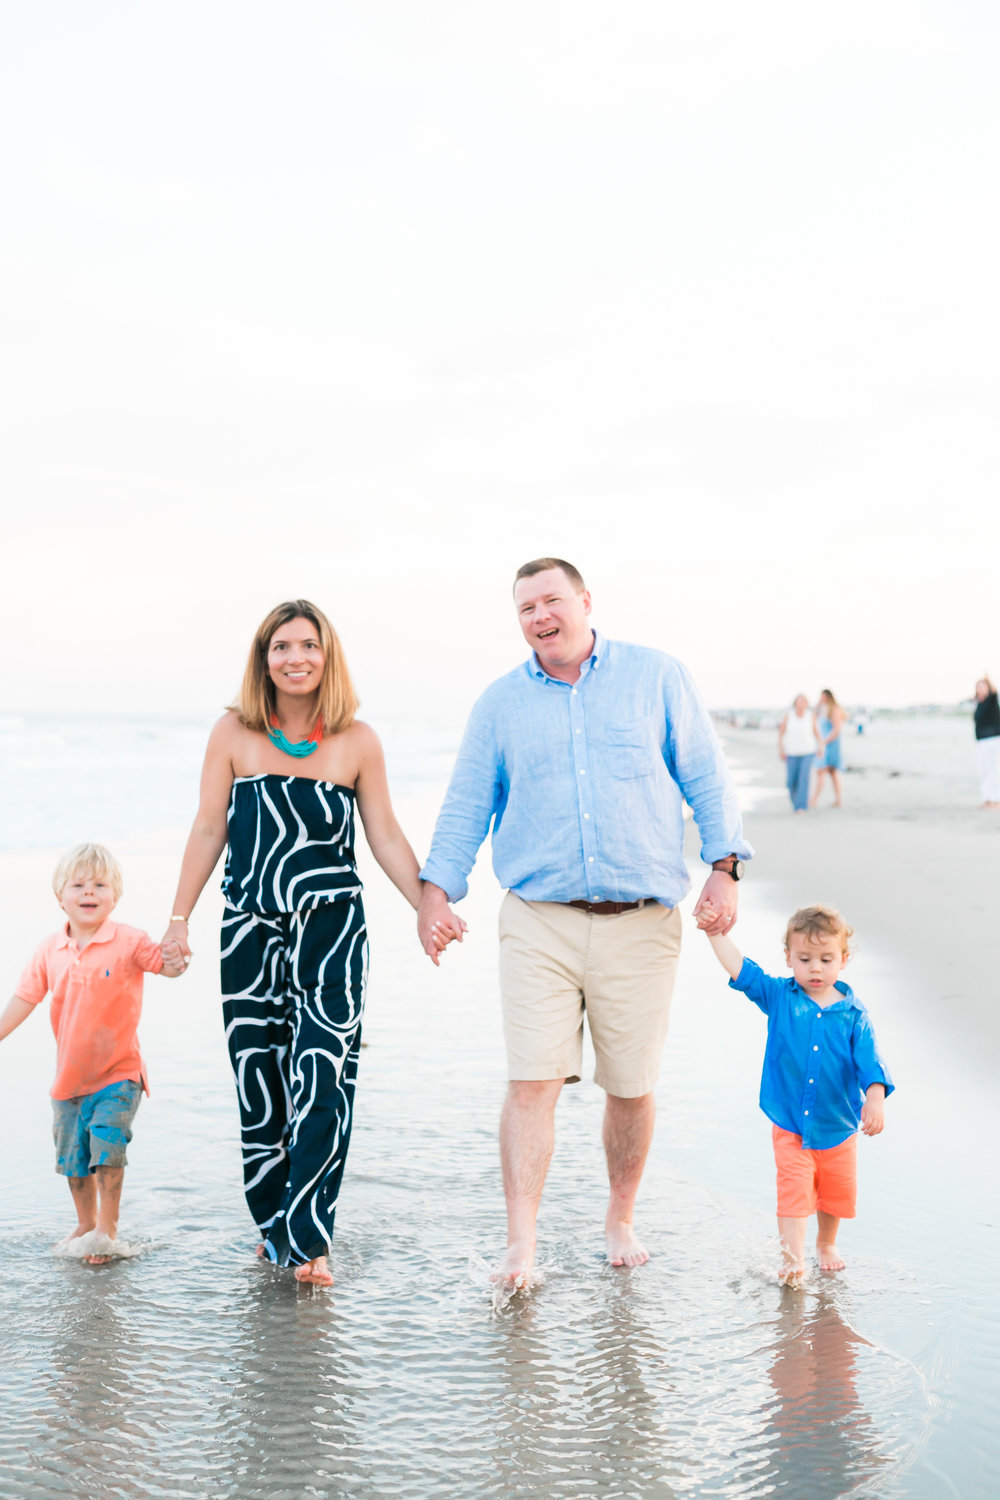 Magdalena Studios - Beach Family Photographer in Ocean City New Jersey NJ4.jpg